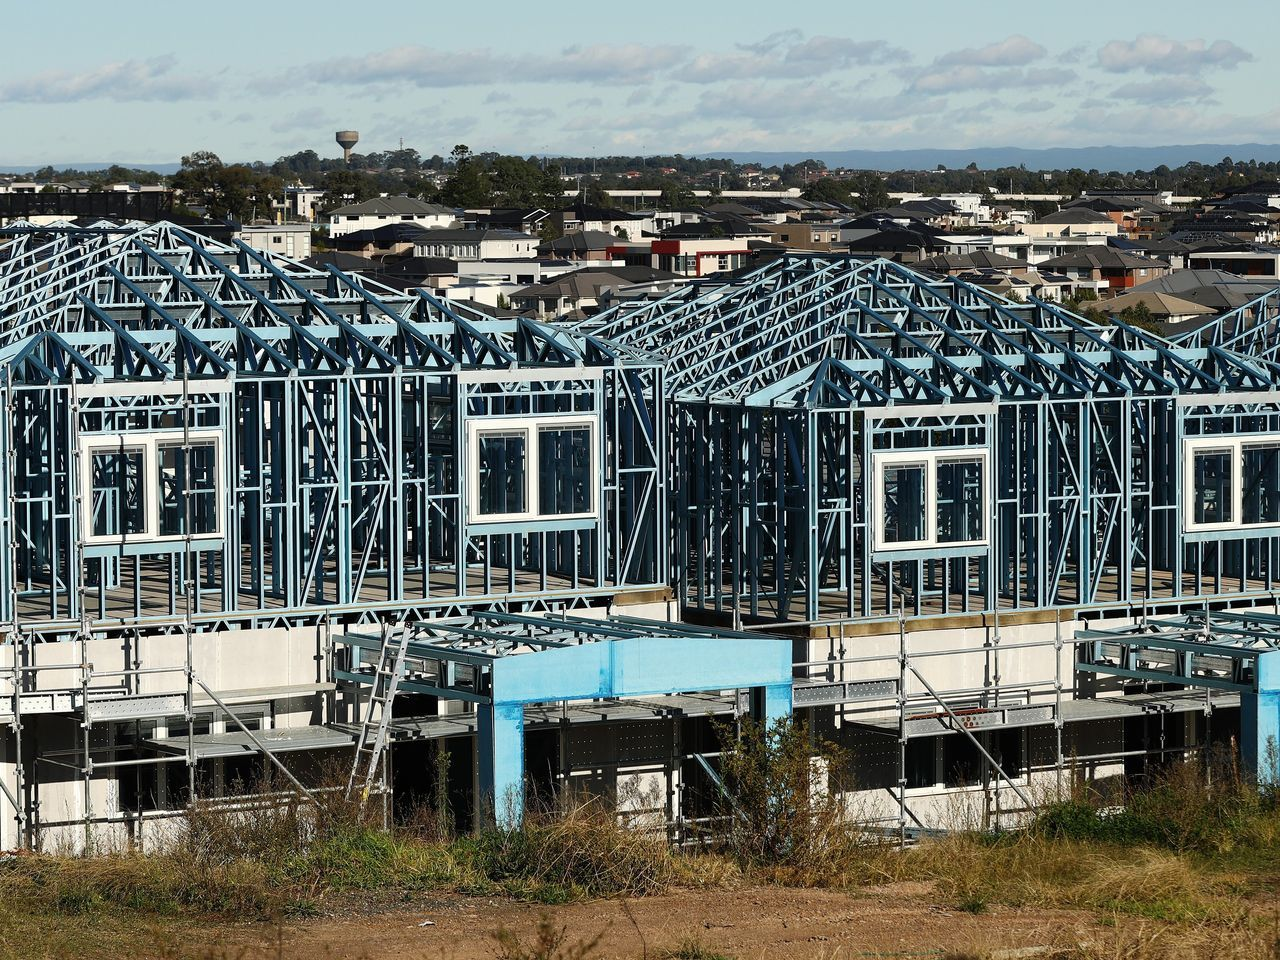 Australia's Housing Market Roars Back, Boosting Wealth and Construction